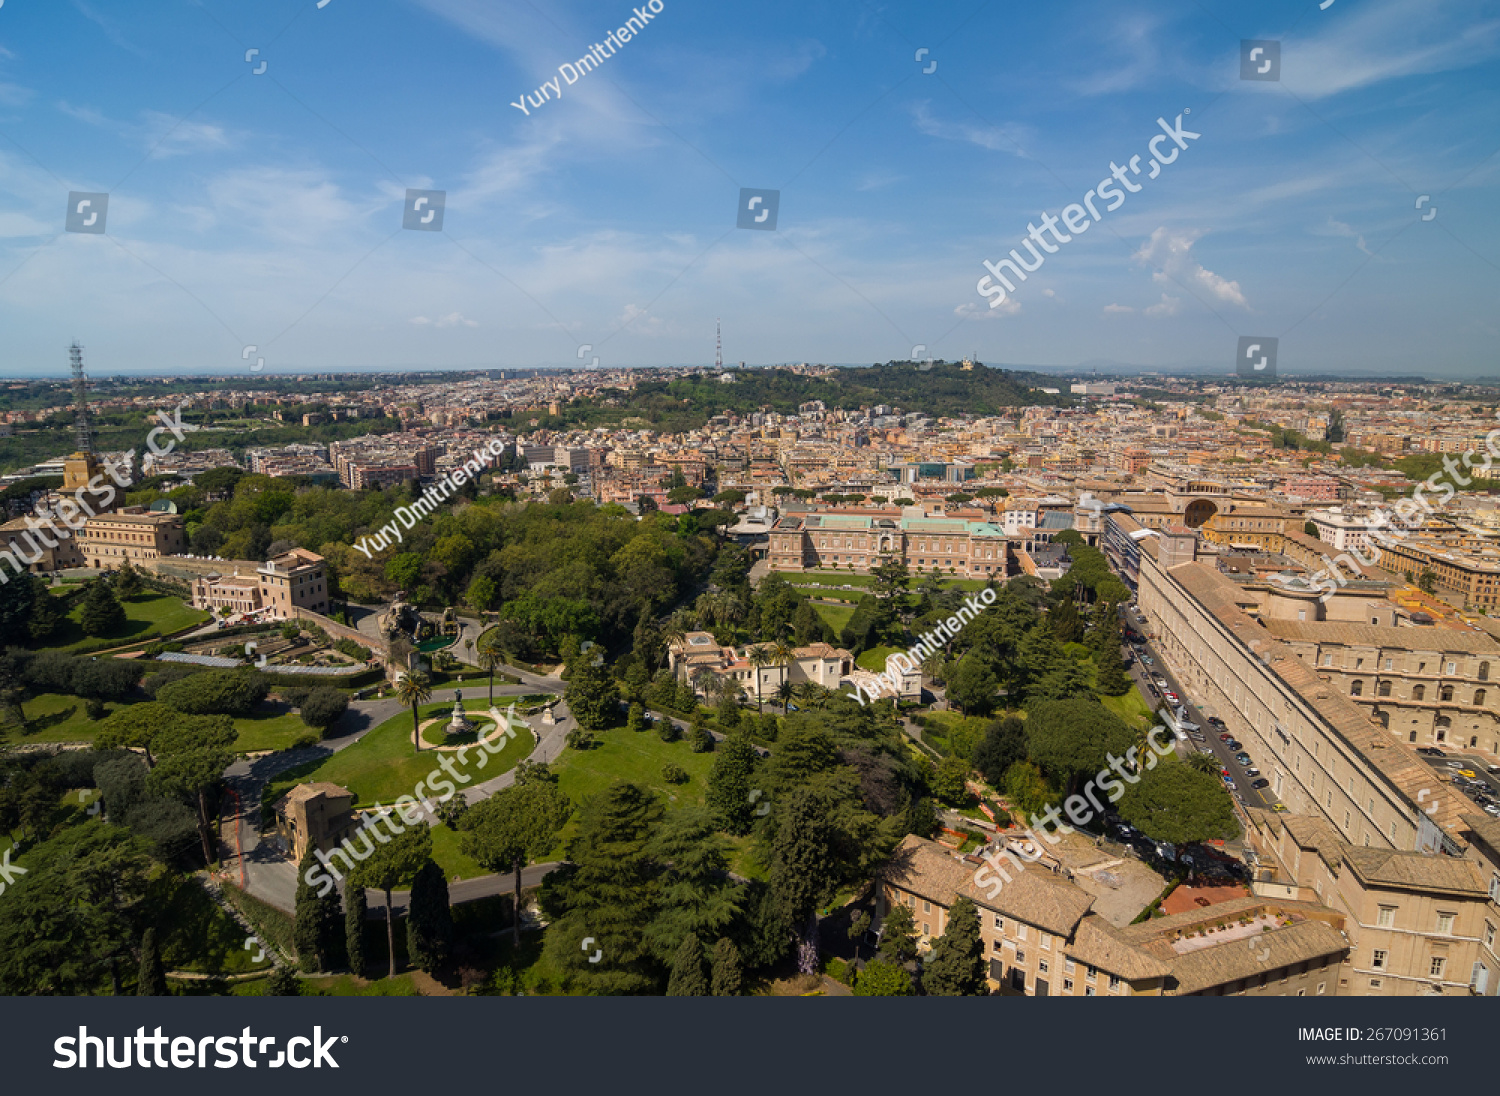 Aerial view of the Vatican City and Rome, Italy. Panorama of the old ...